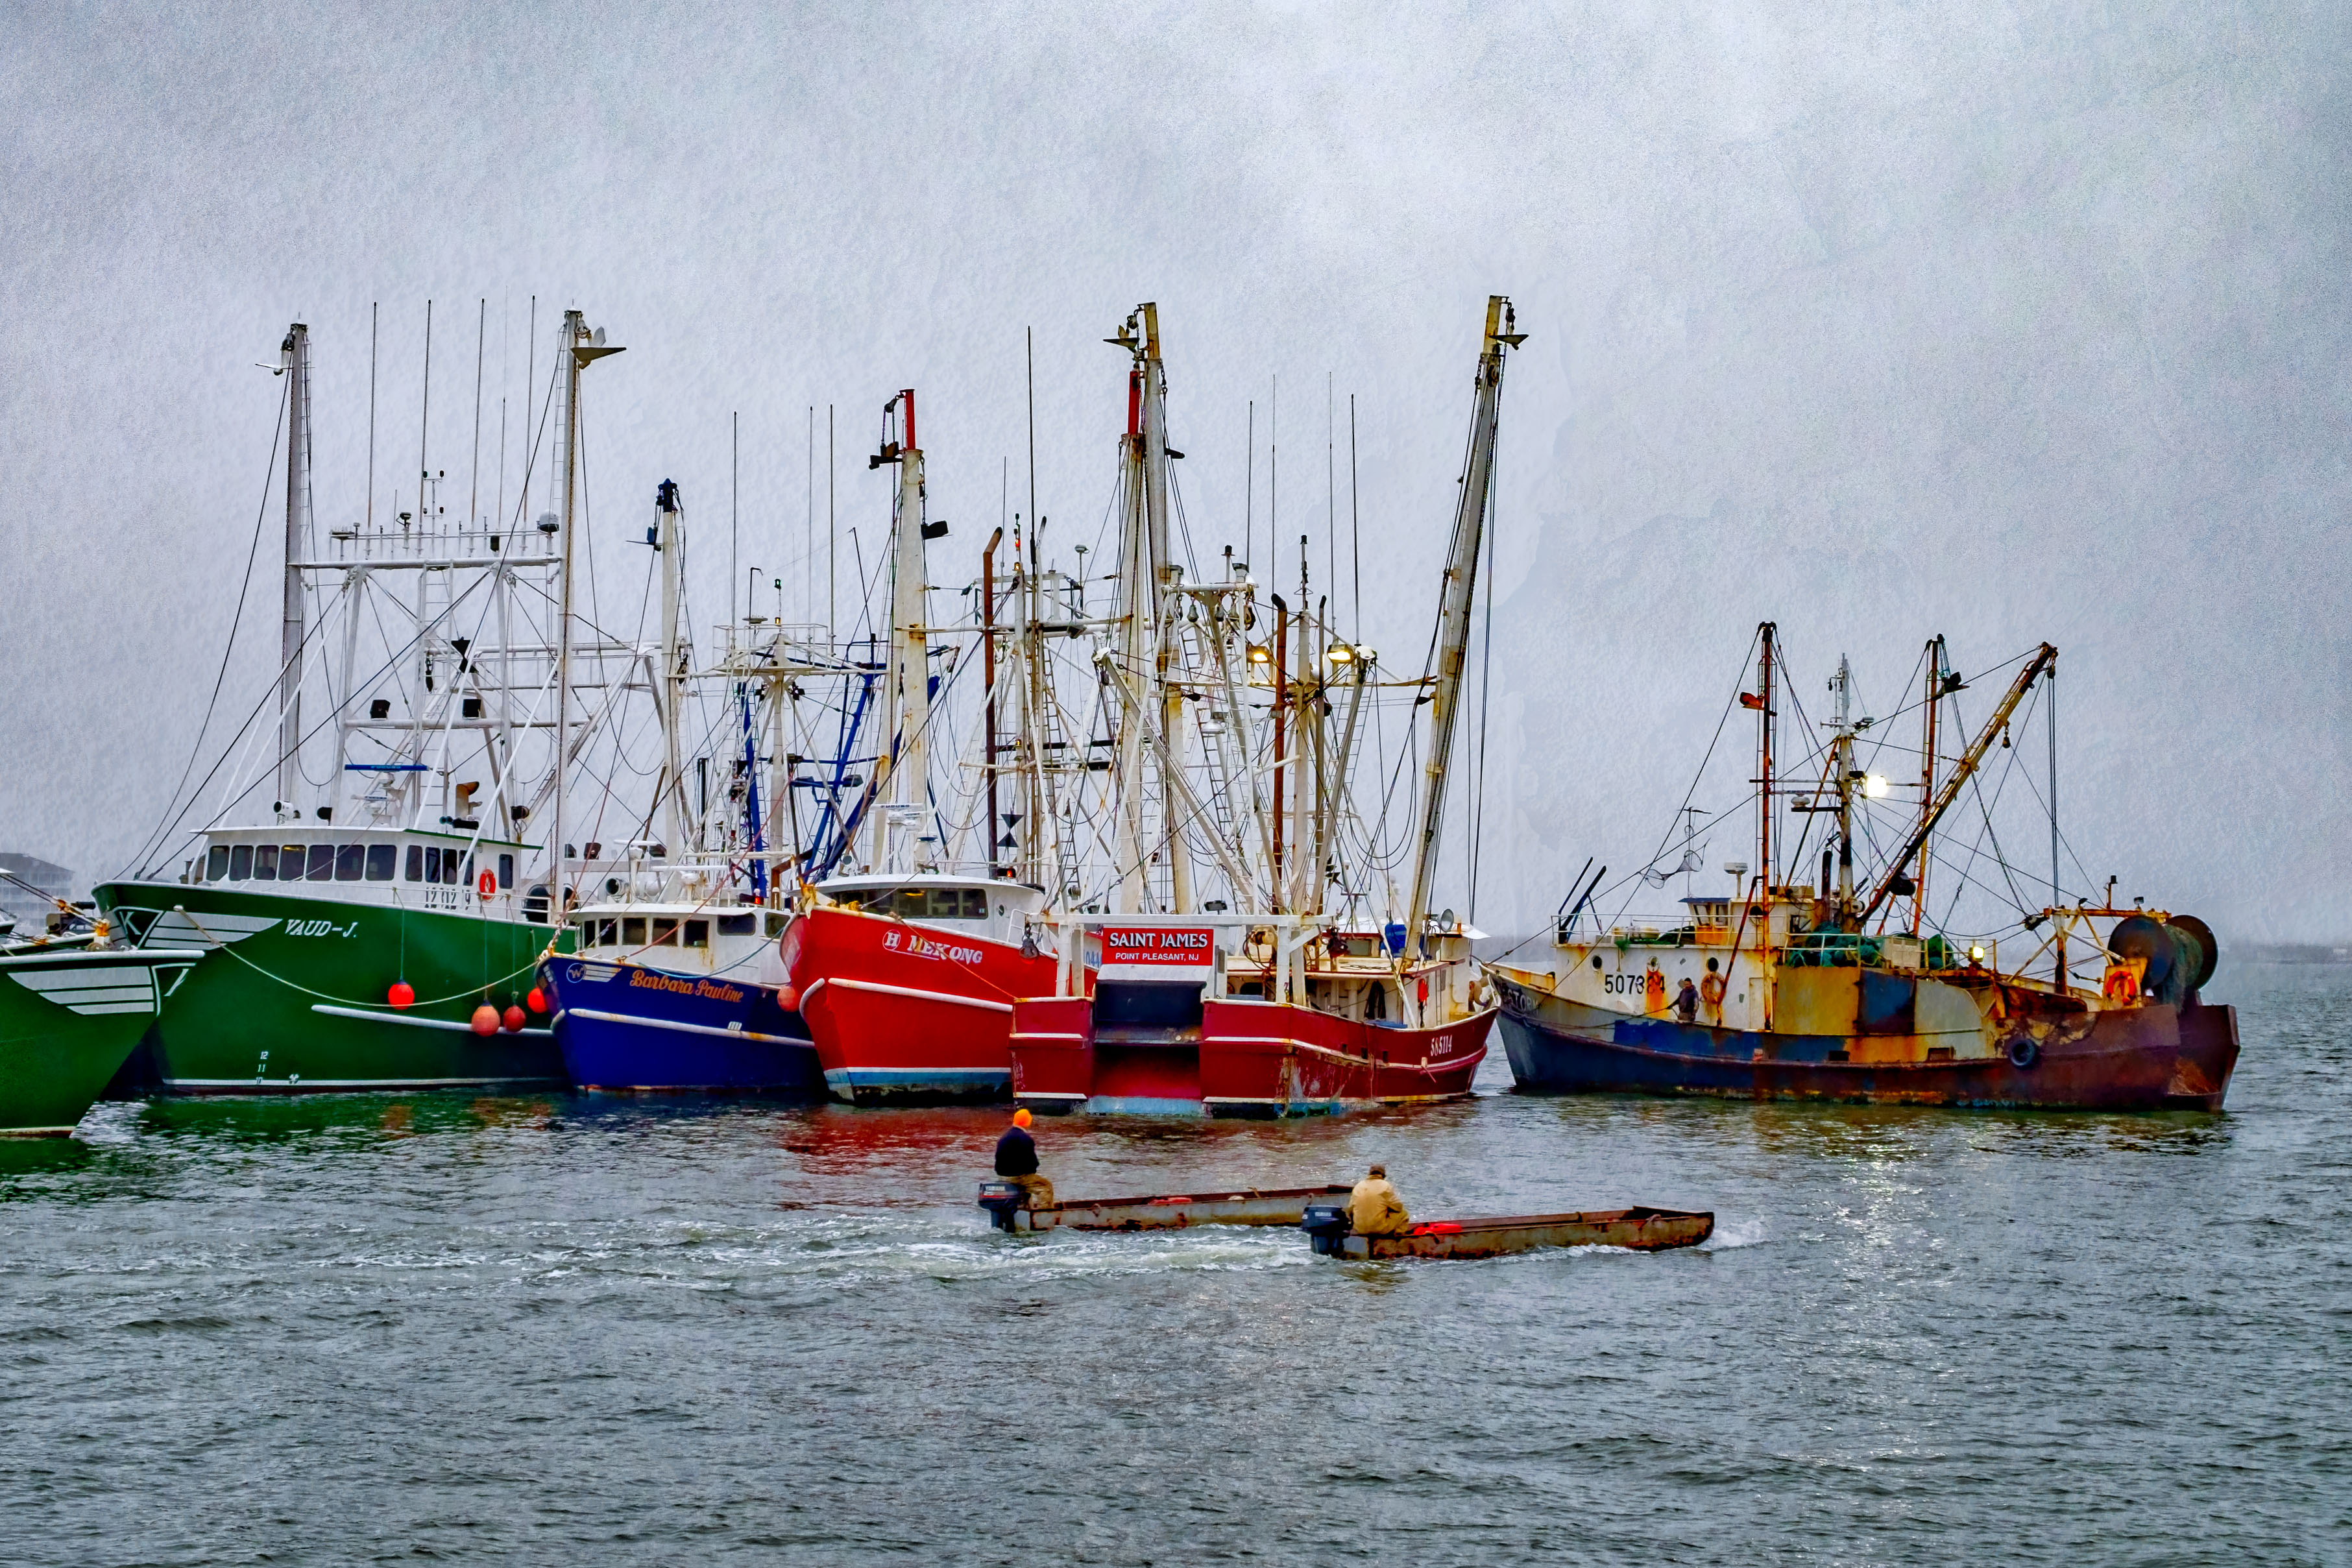 Image of the fishing fleet in Cape May, NJ.